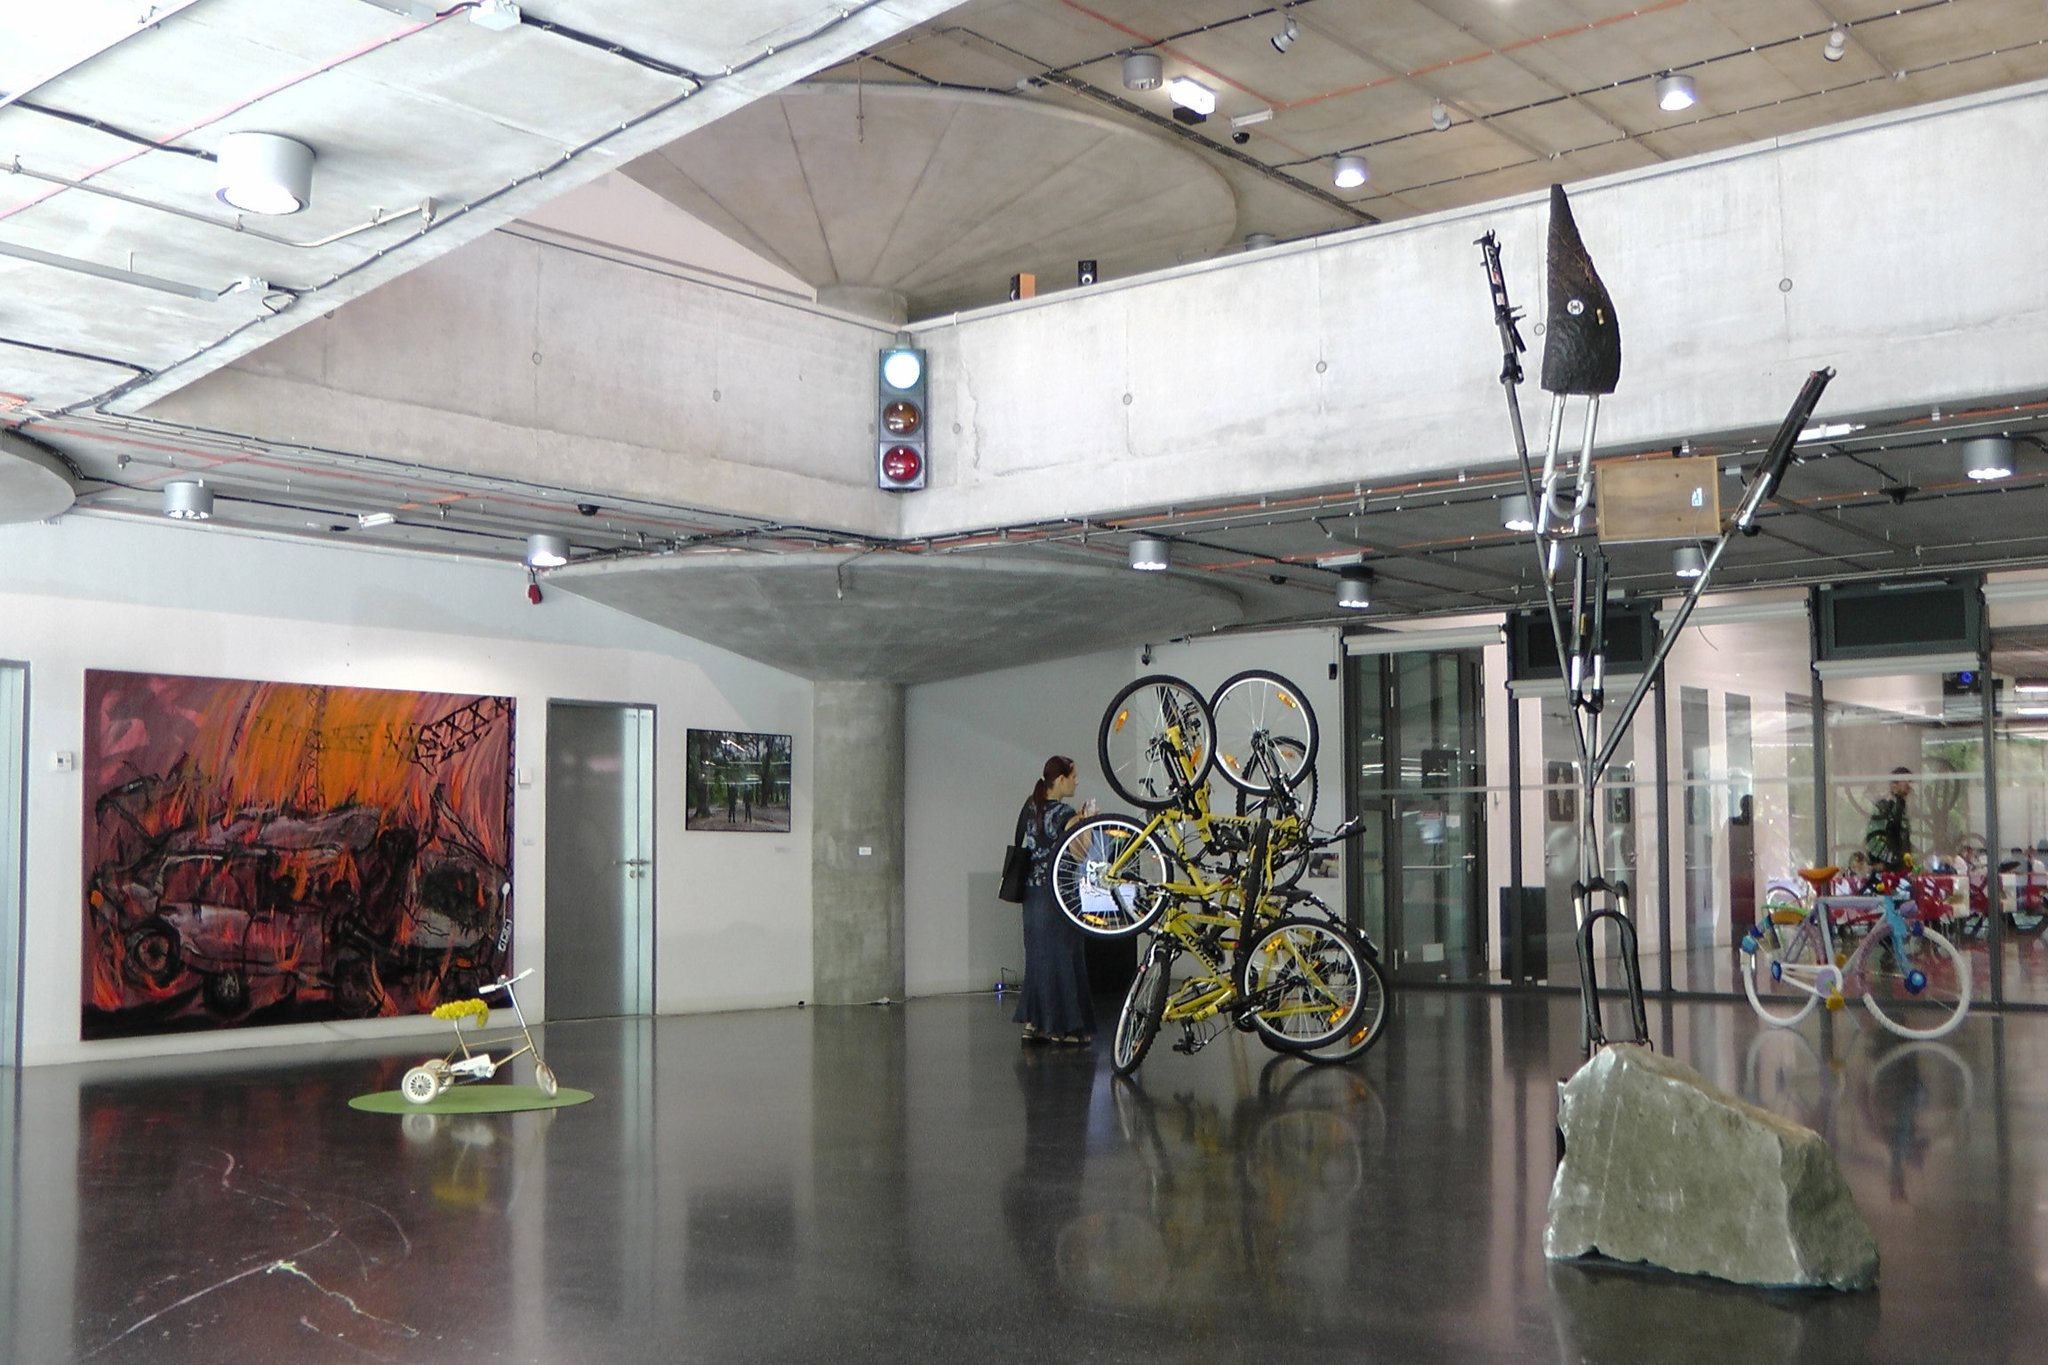 Velocypedia exhibition at Gallery NTK.